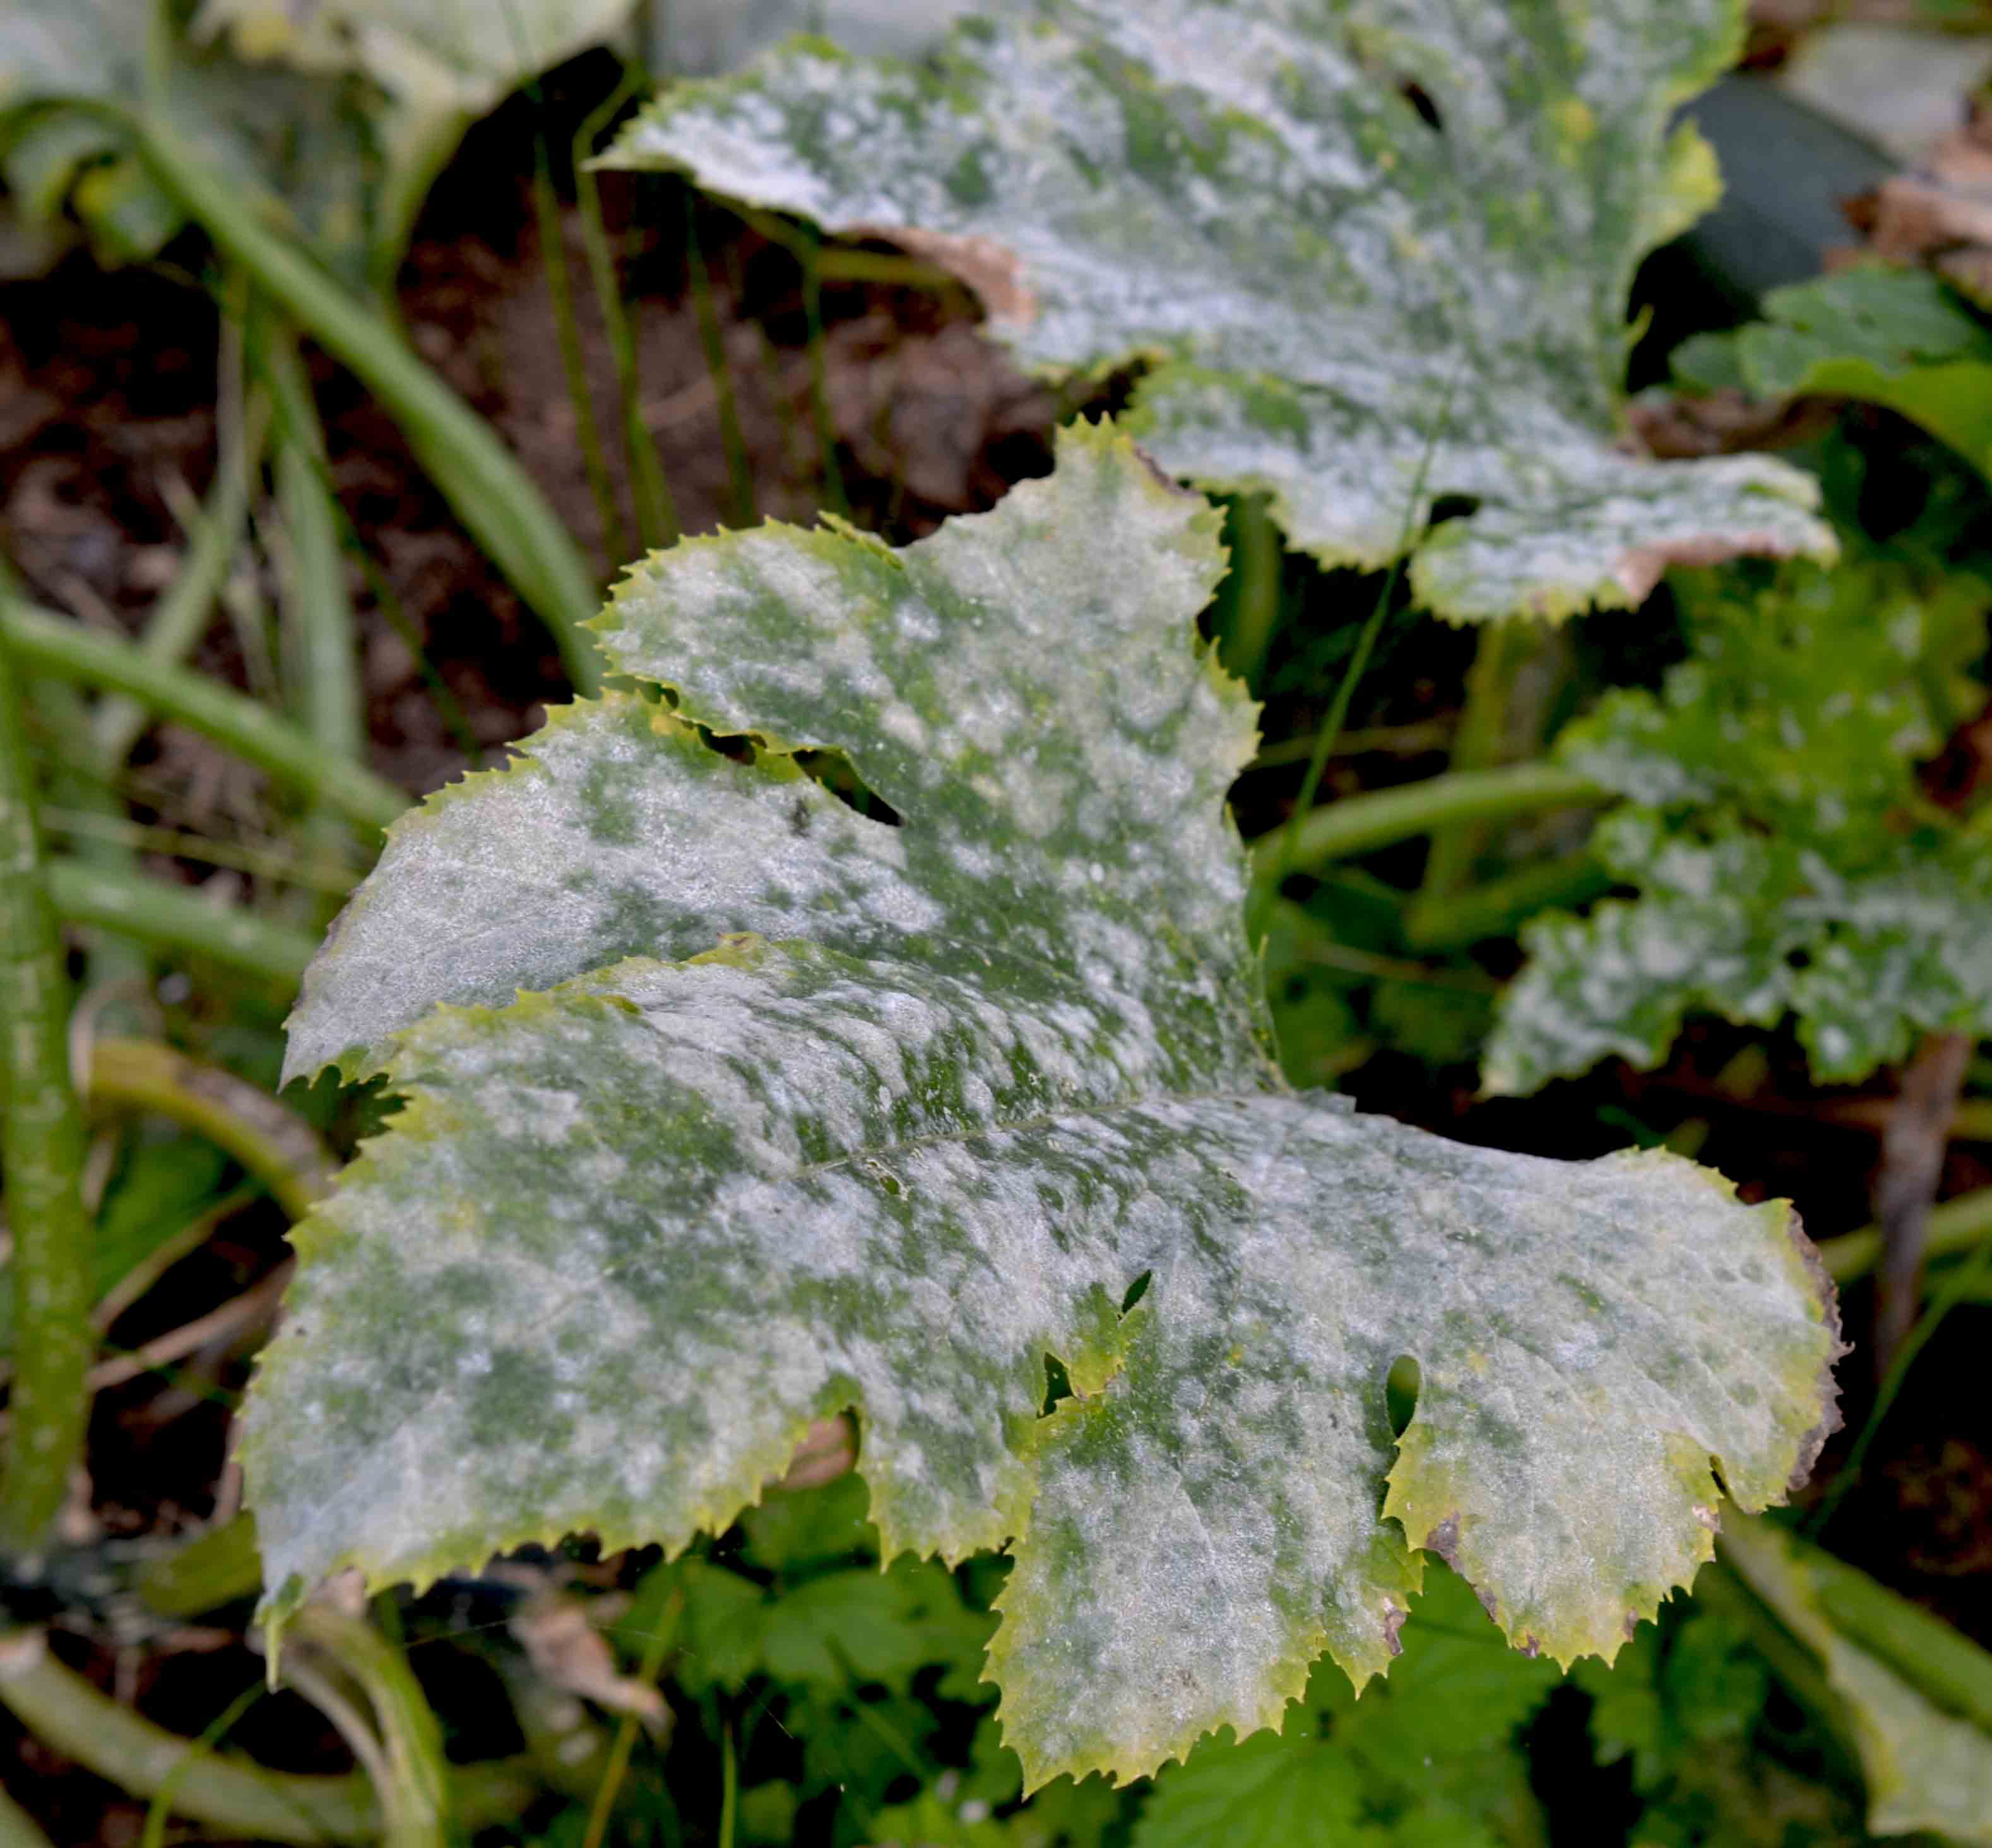 How To Treat Powdery Mildew Without ChemicalsGreenside Up